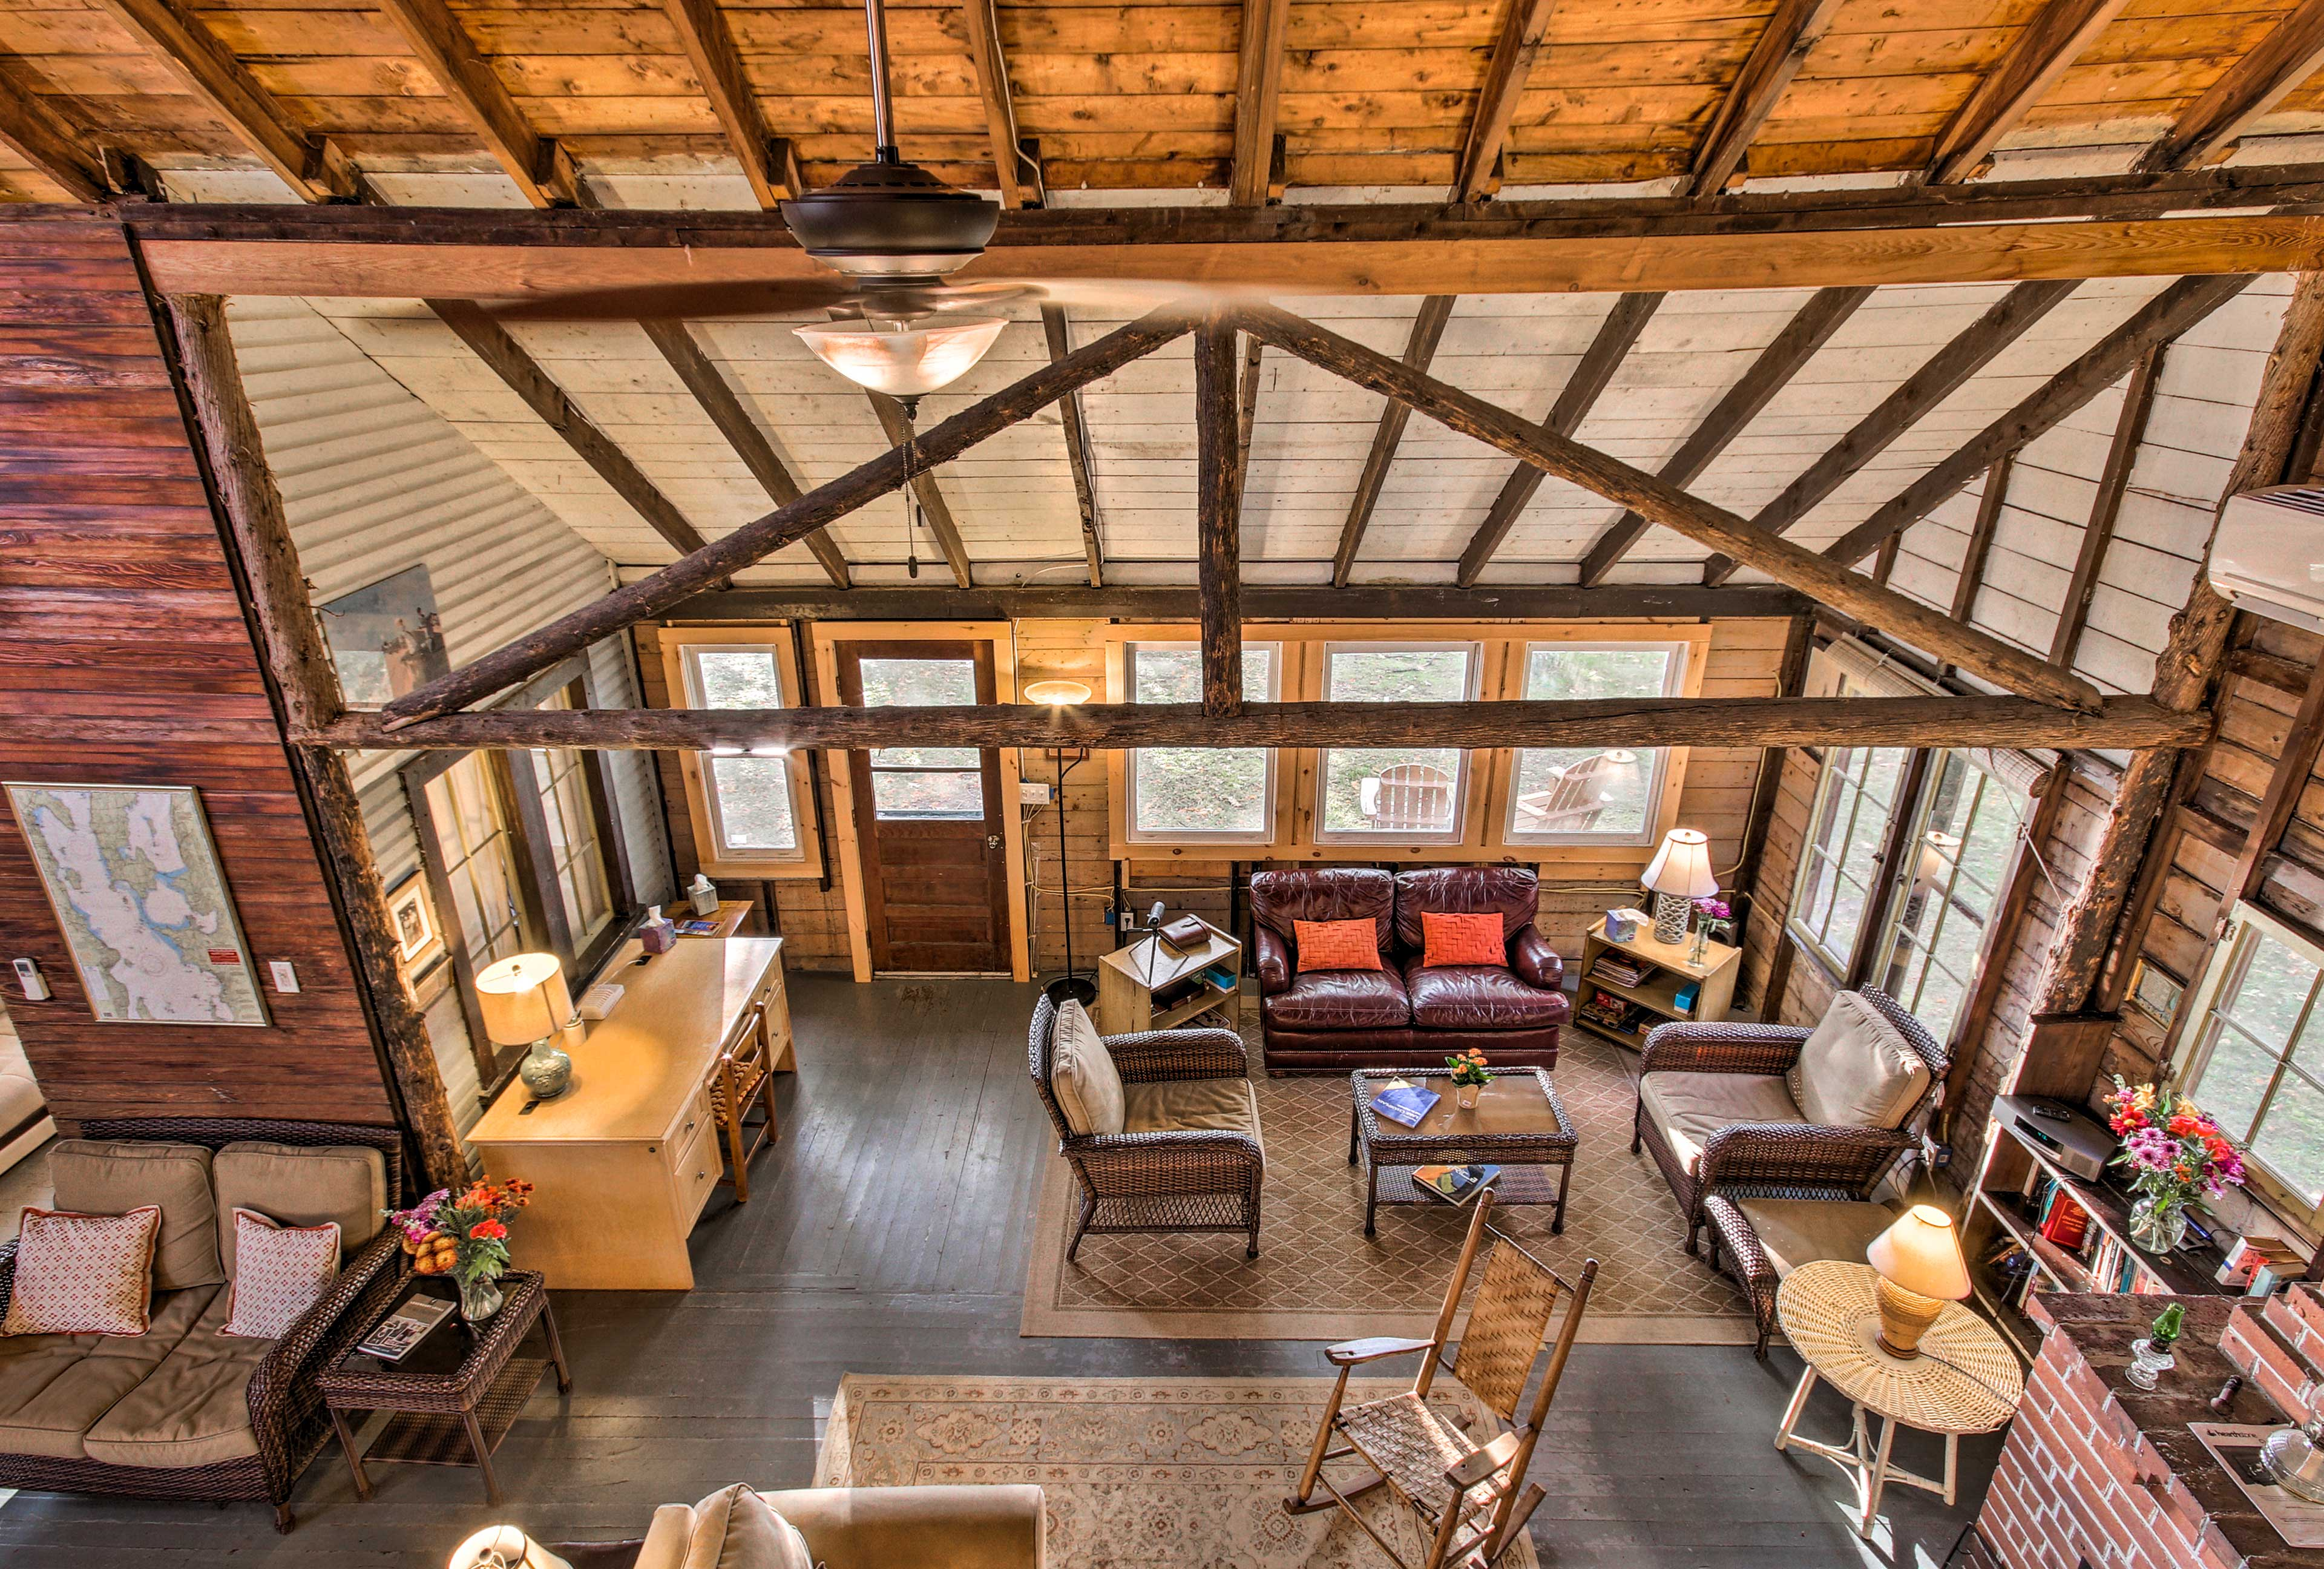 Three bedrooms are located in the 2nd story loft of this 1,850-square-foot home.